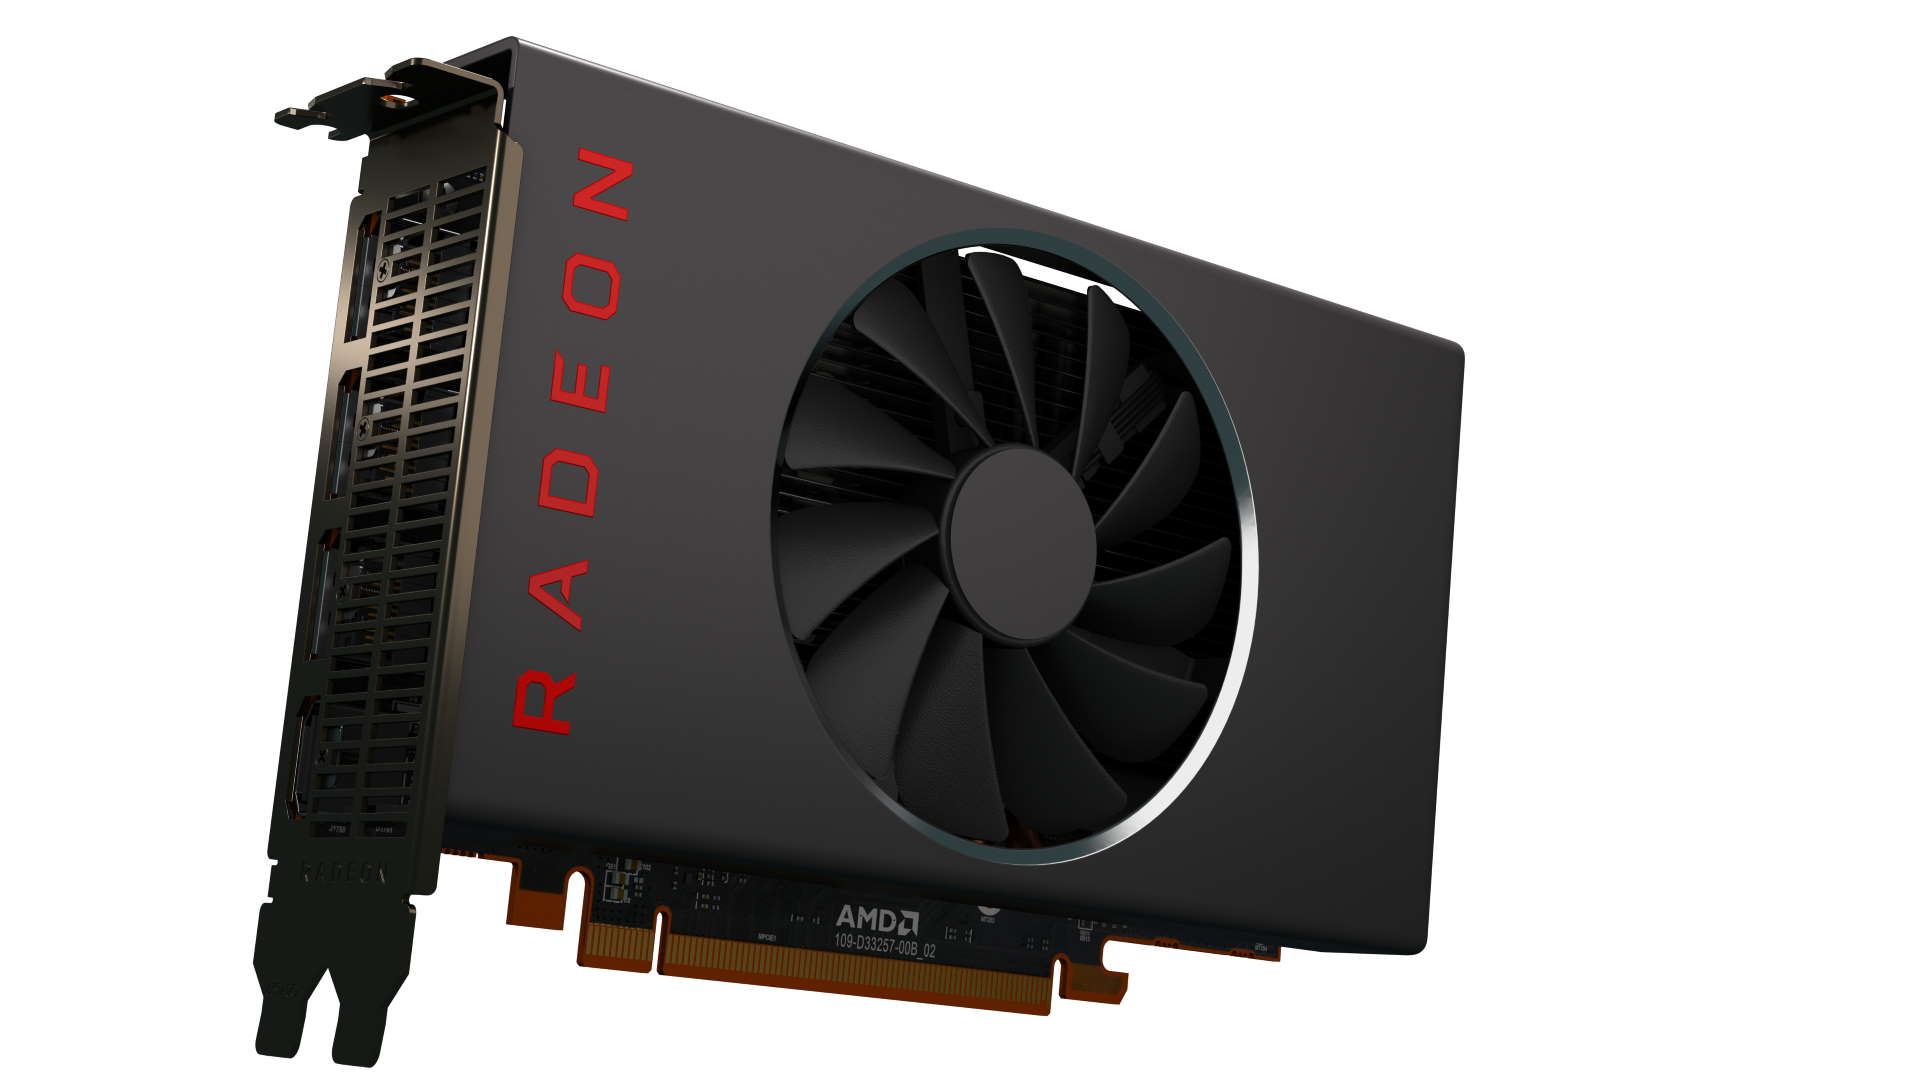 AMD's RX 5500 graphics cards are coming in three different flavours